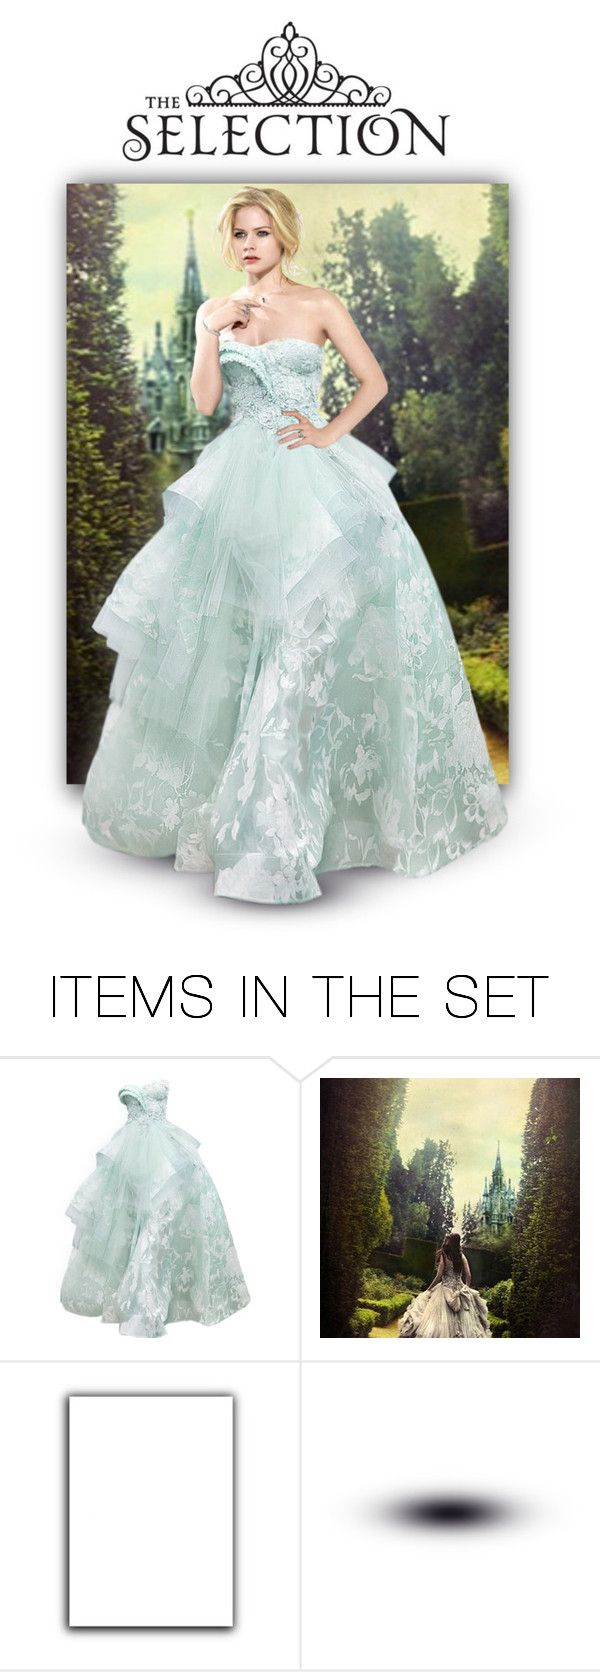 """""""The Selection- Prince Jace Shout Out!"""" by trulydear ❤ liked on Polyvore featuring art"""